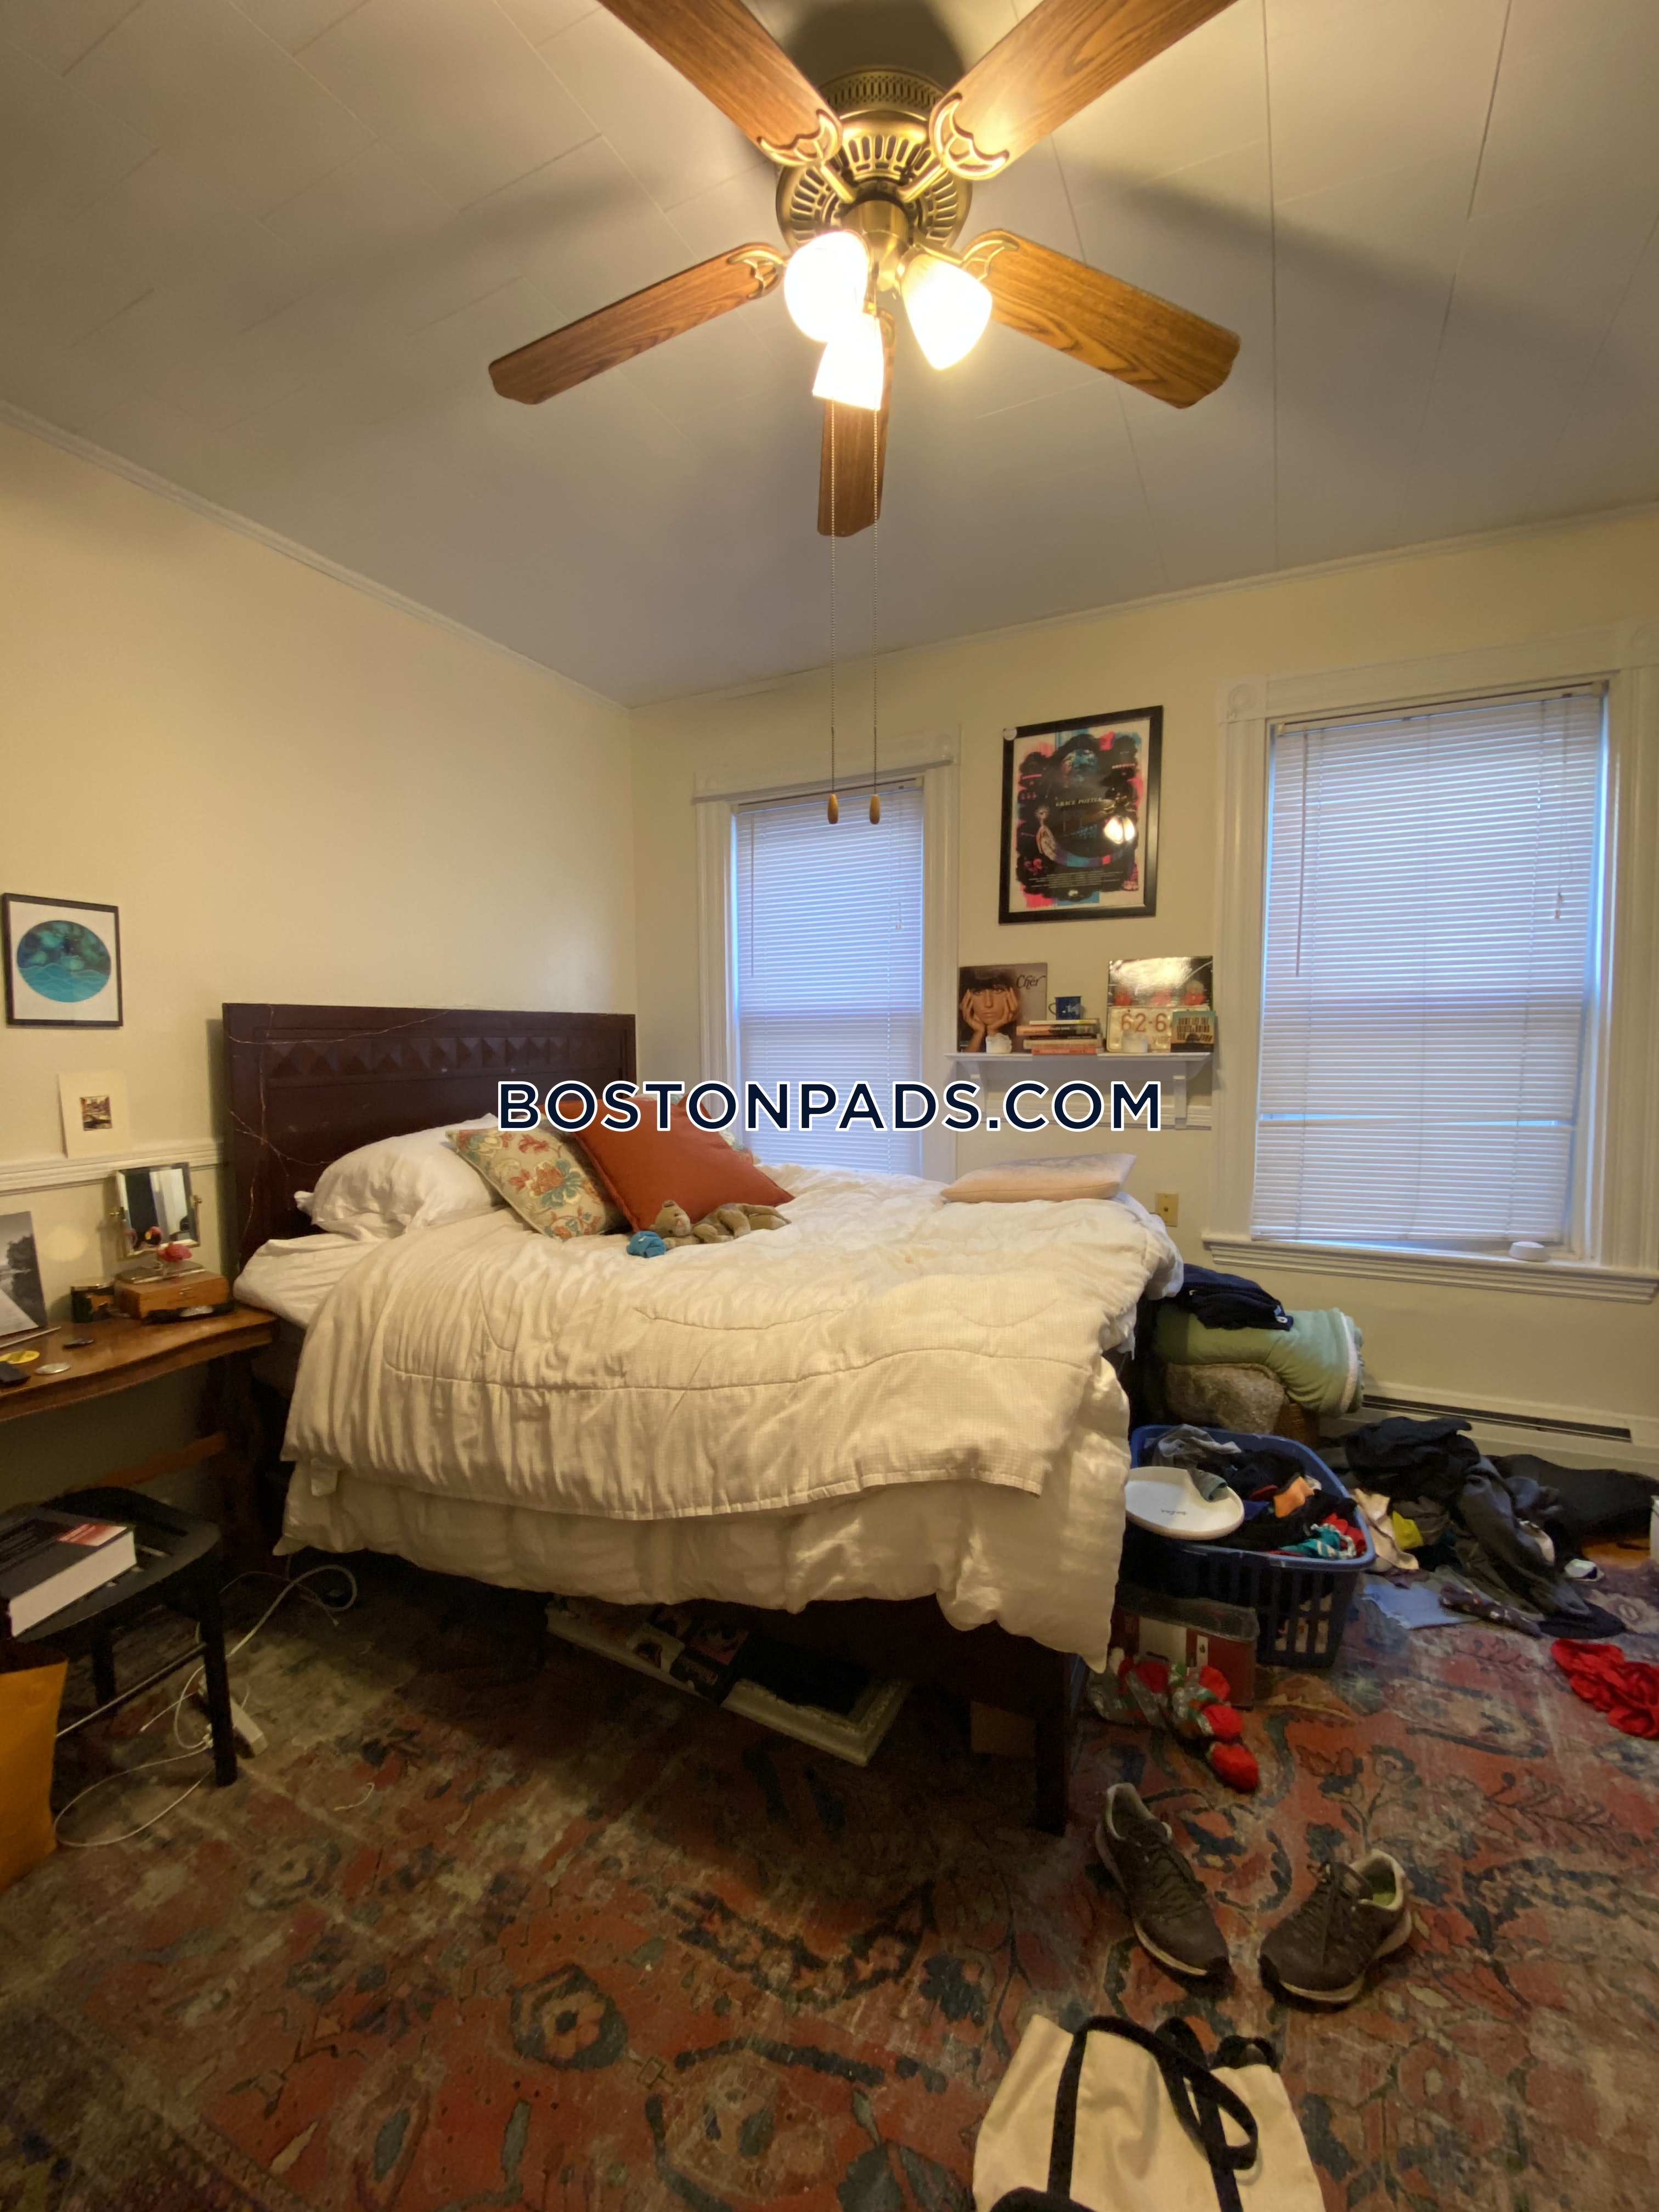 CAMBRIDGE - CENTRAL SQUARE/CAMBRIDGEPORT - $3,945